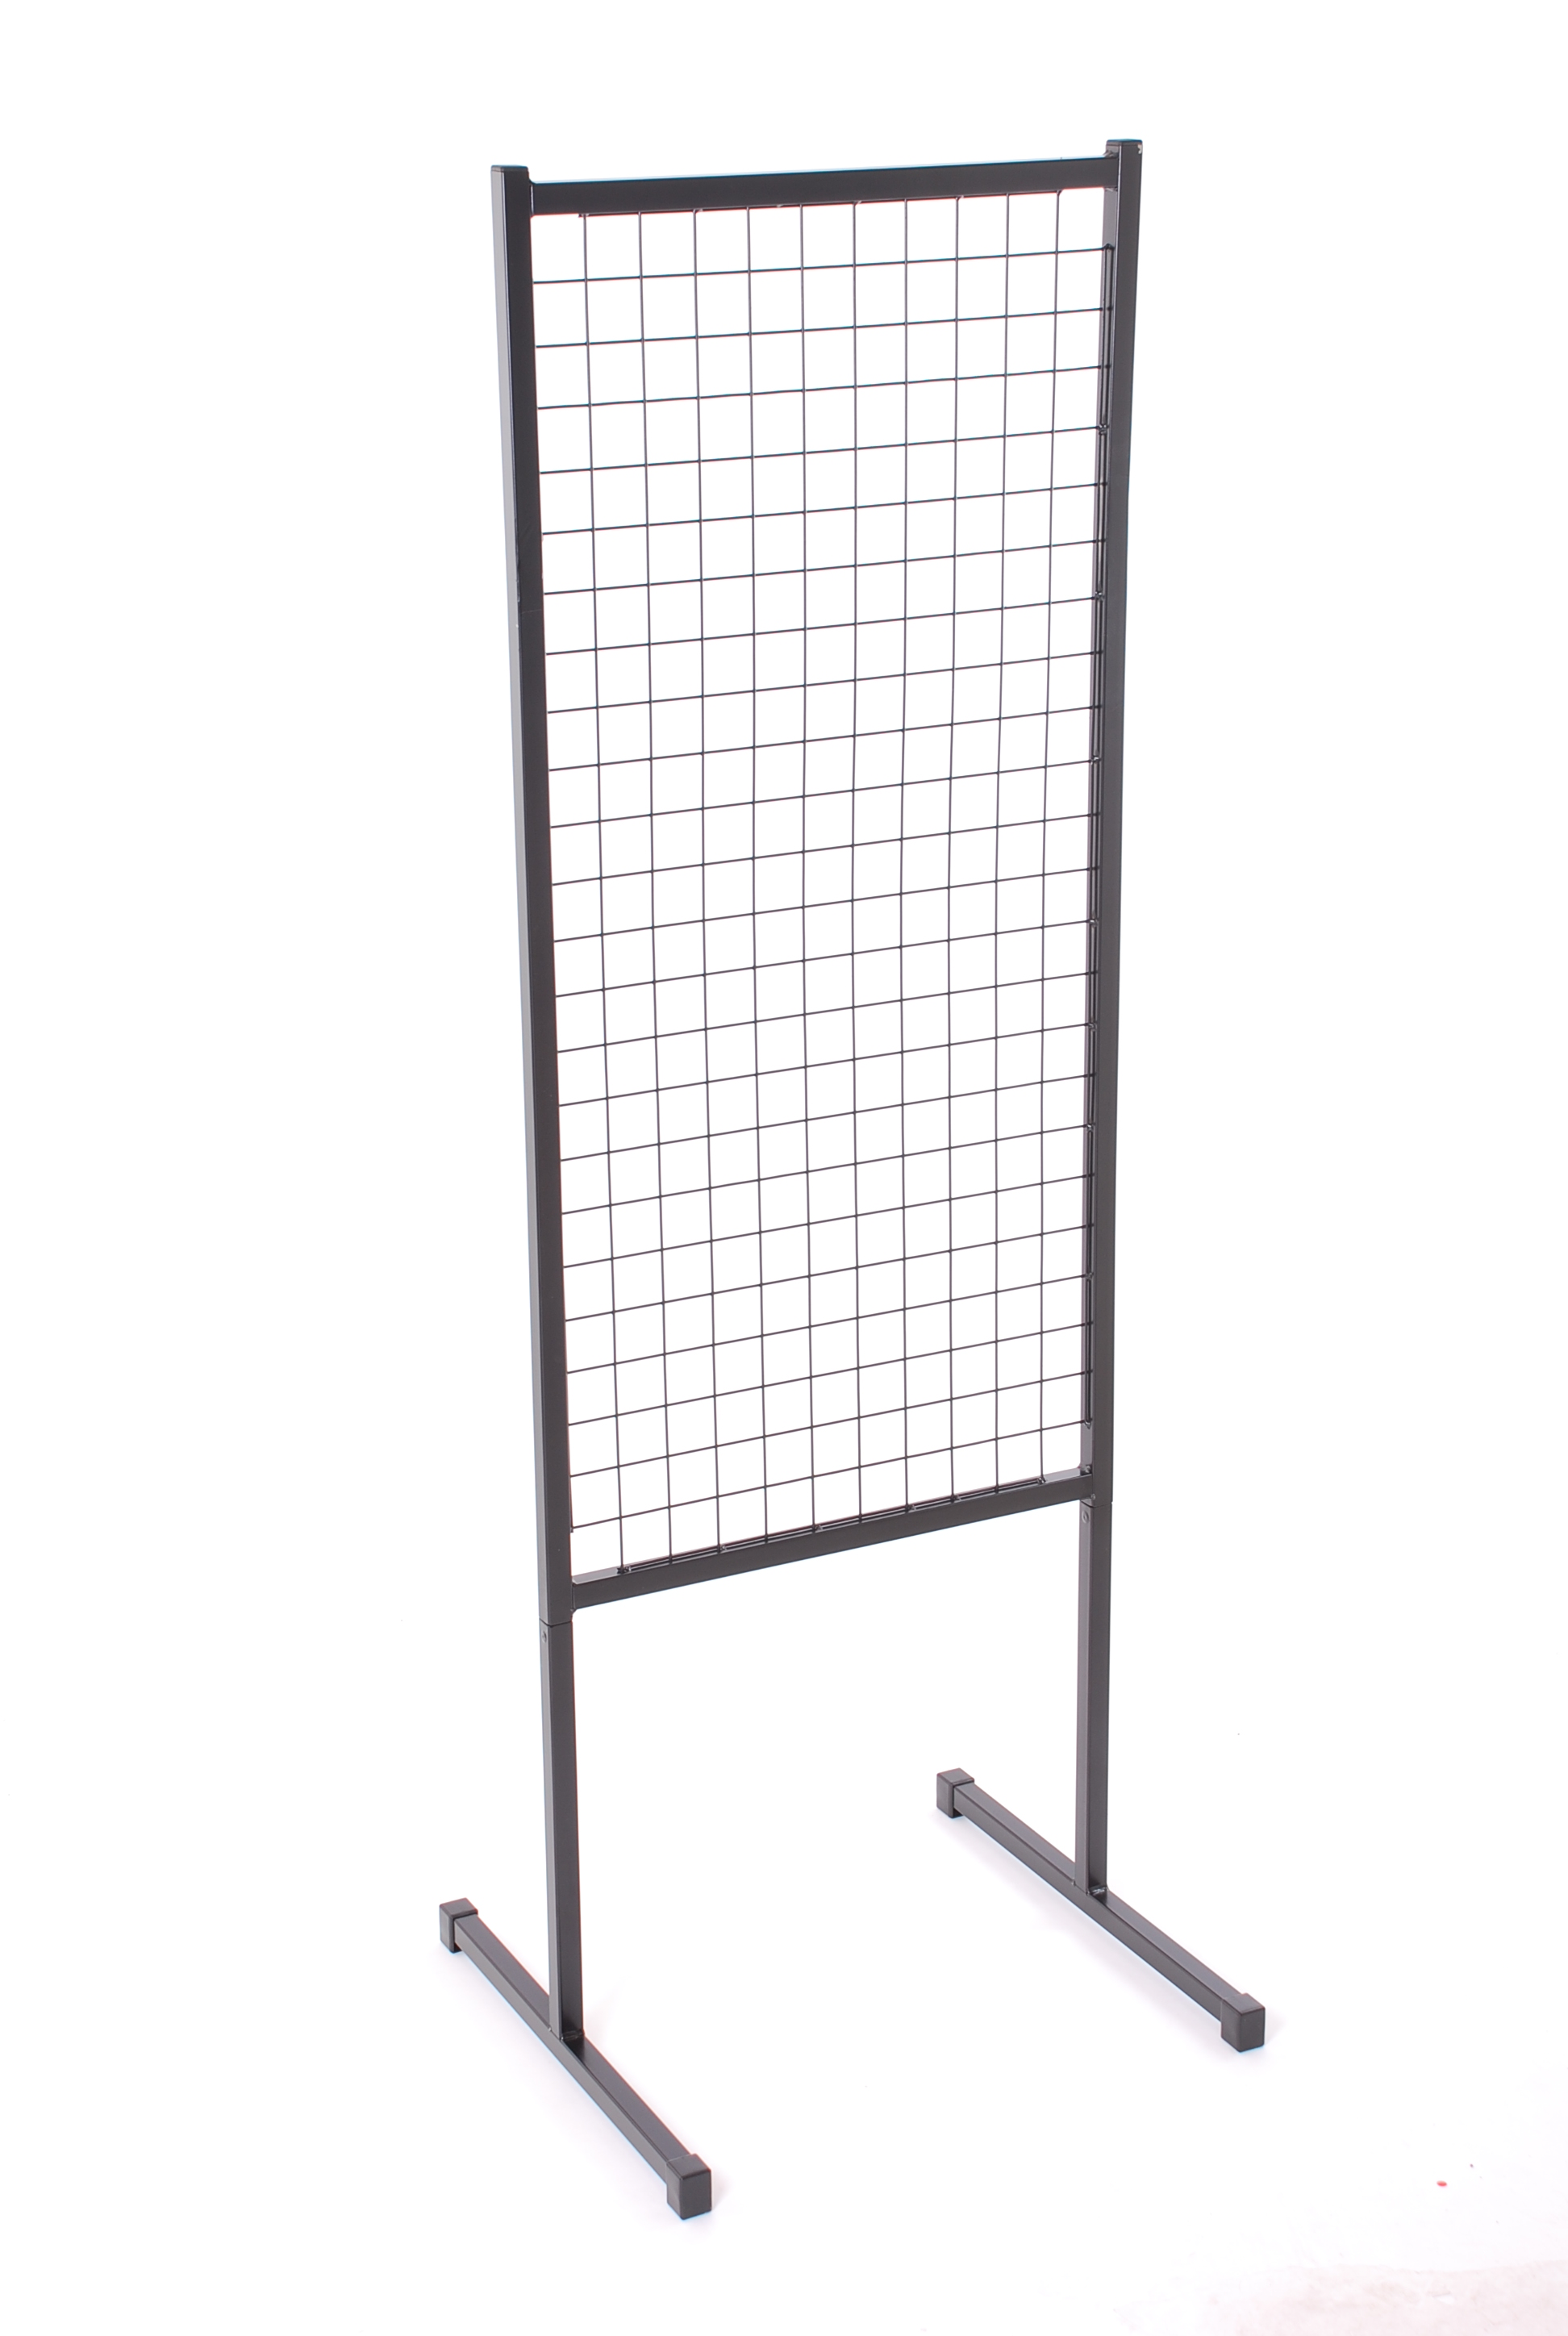 Bakery Display Rack moreover Ewrazphoto Nylon Sling Protector also 4574196 together with Household Contents together with Wire Bread Stand For Retail Storage. on bread shelves for store